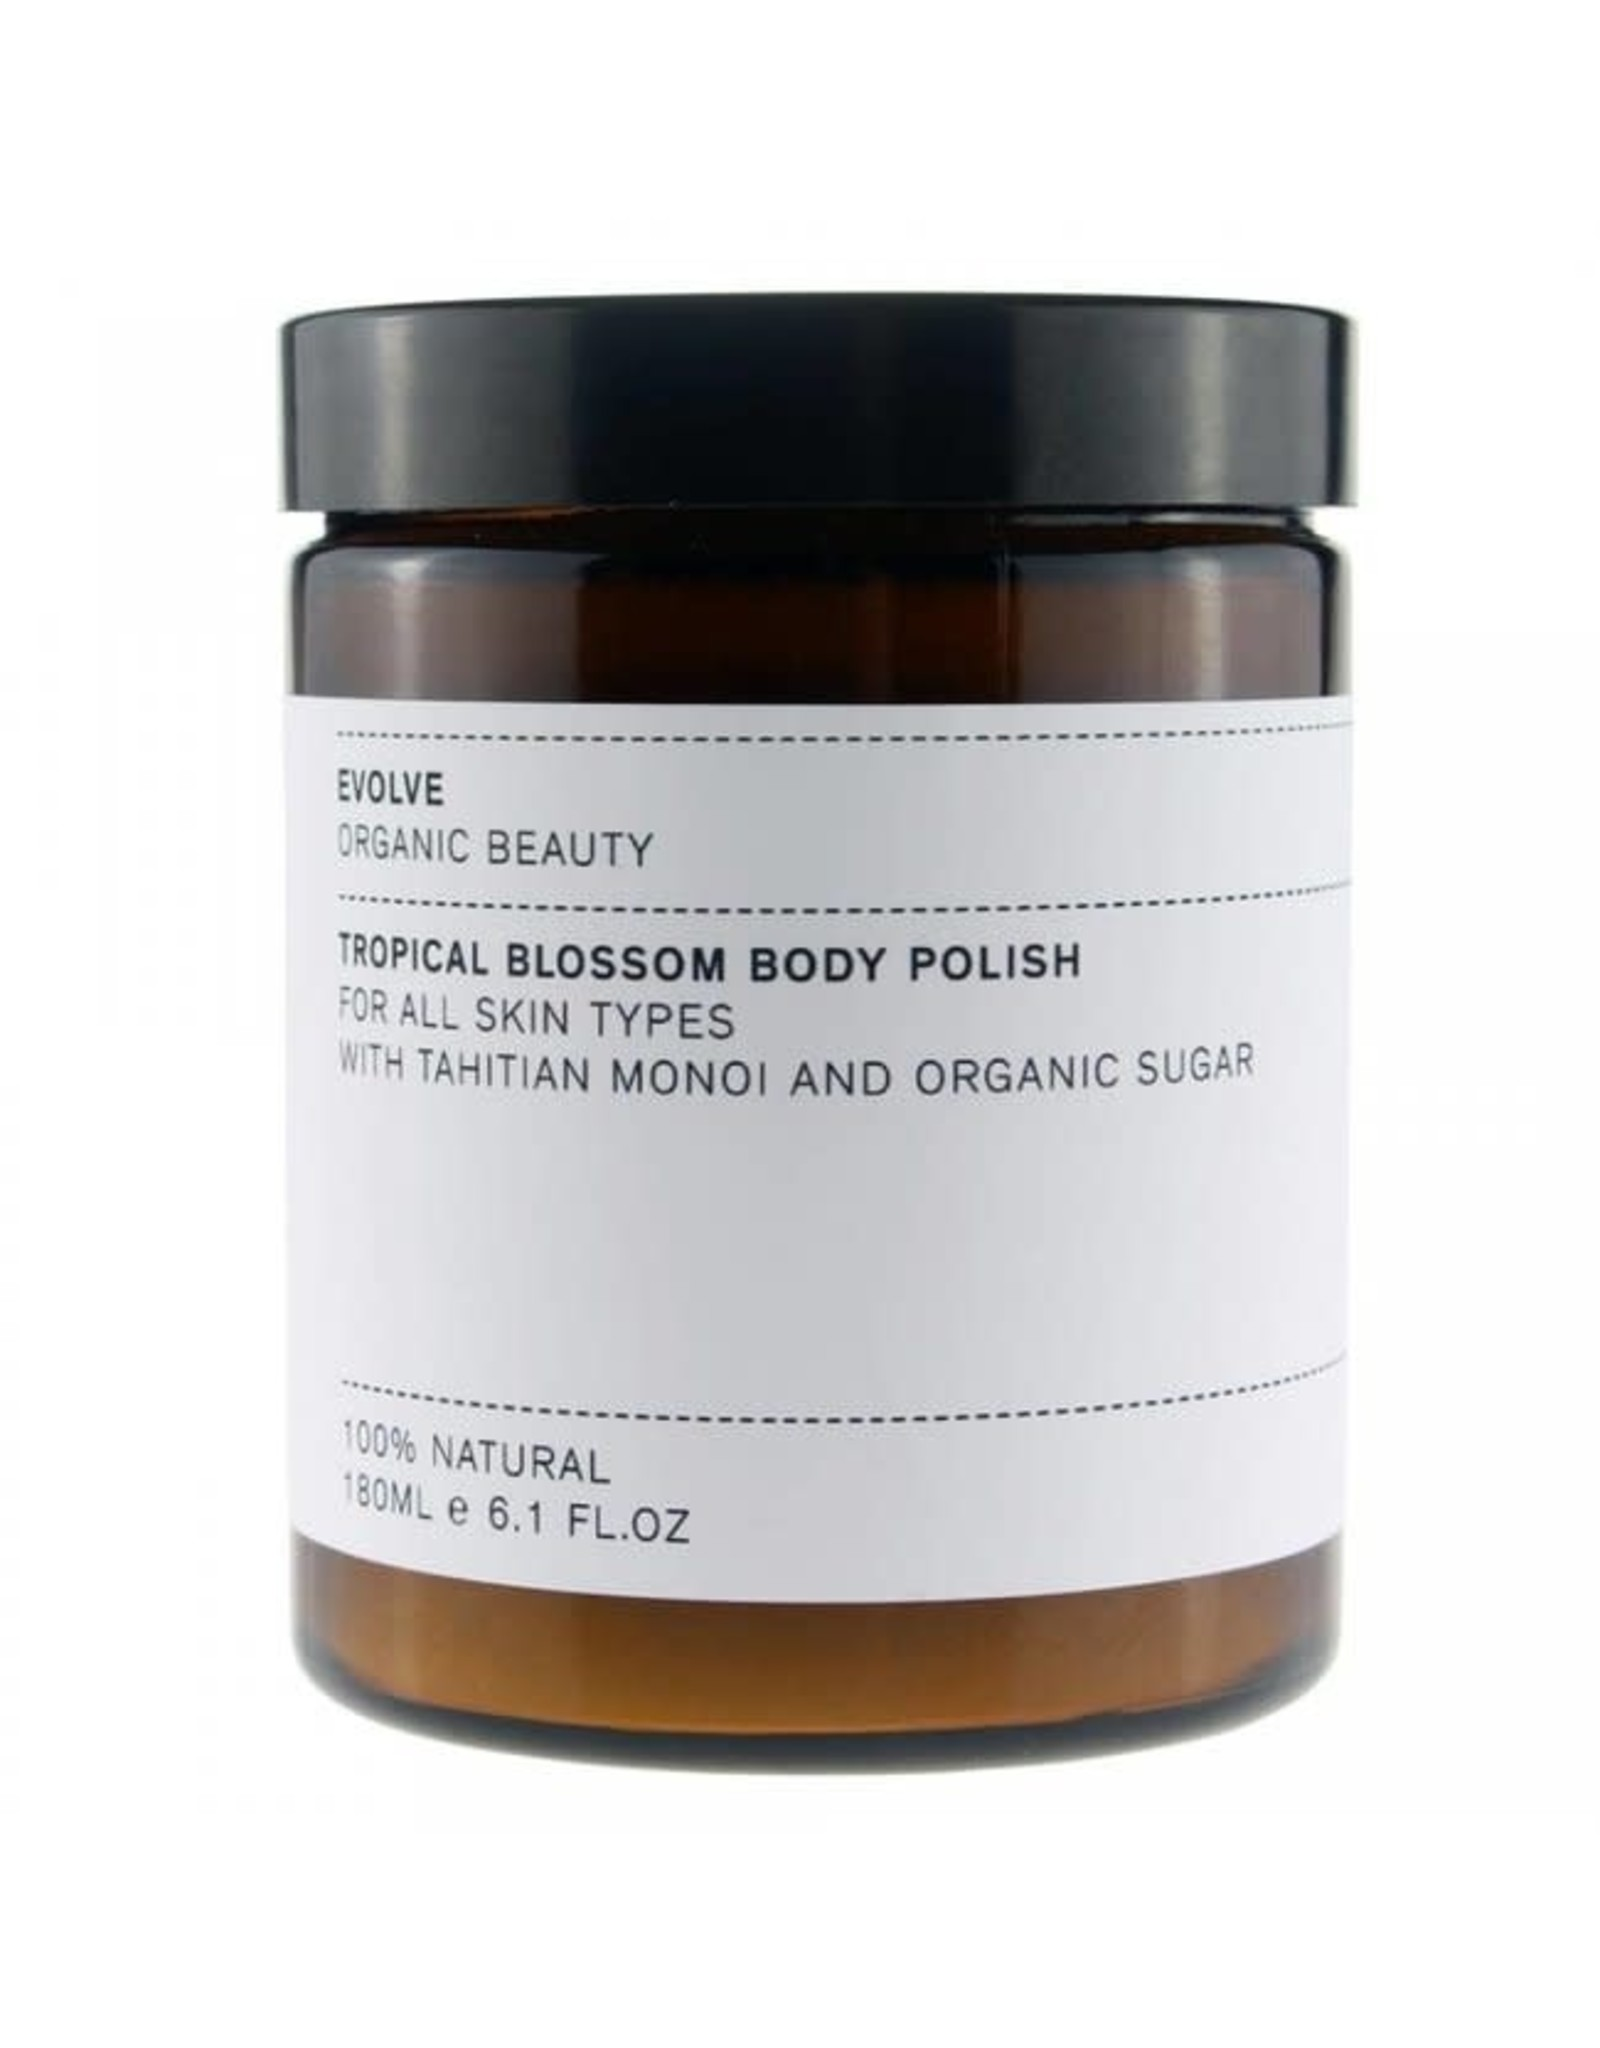 Evolve Tropical body polish